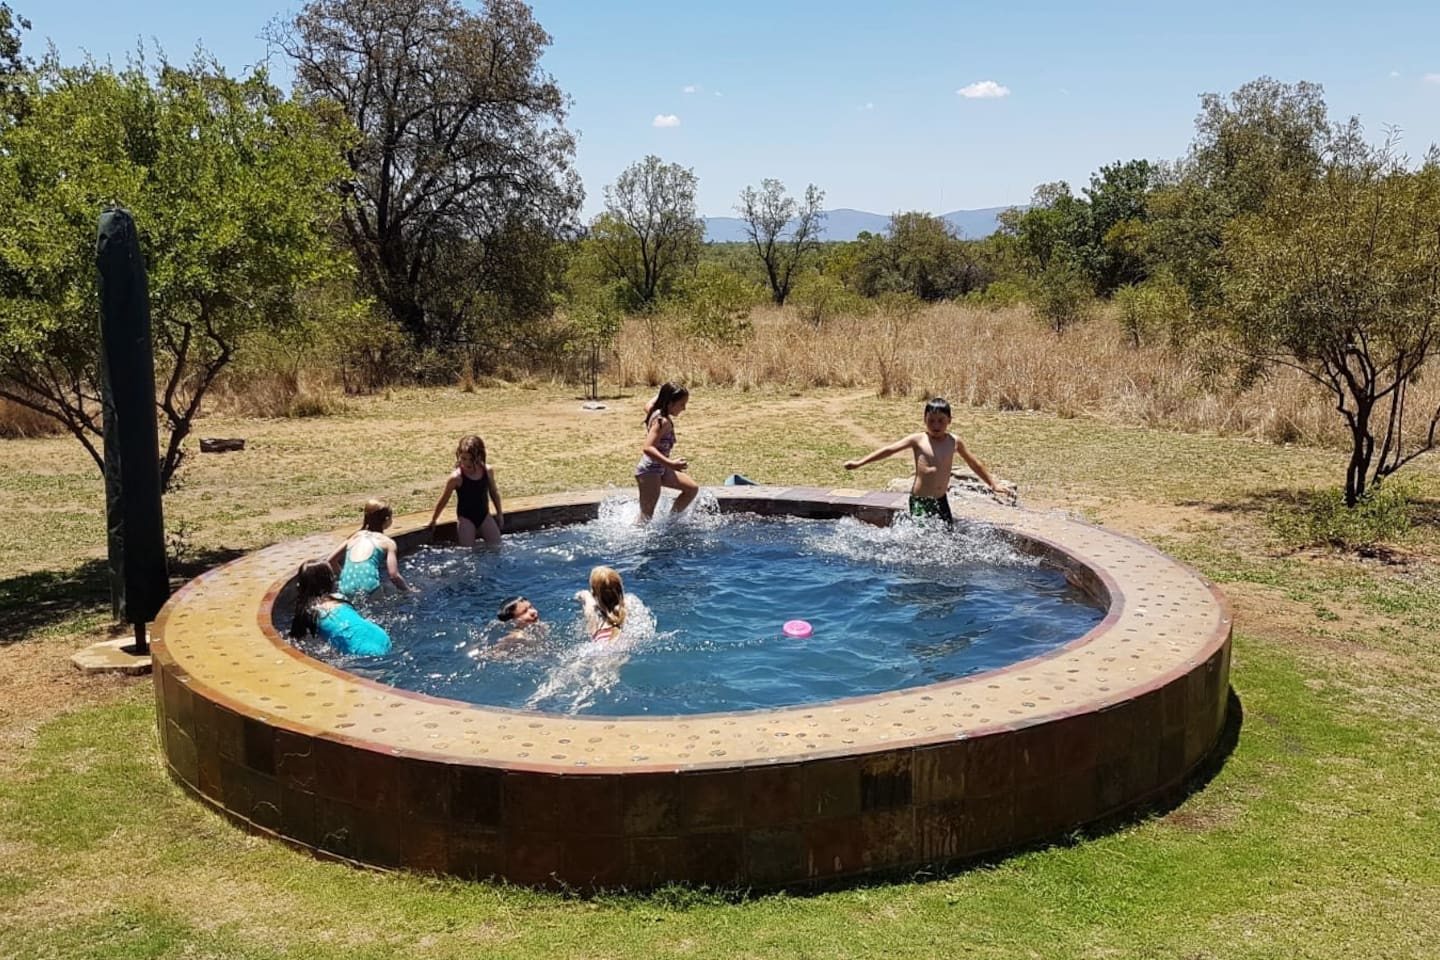 Your own plunge pool in the bush! With more than enough room for a couple of bodies and the perfect place to watch the sun go down.